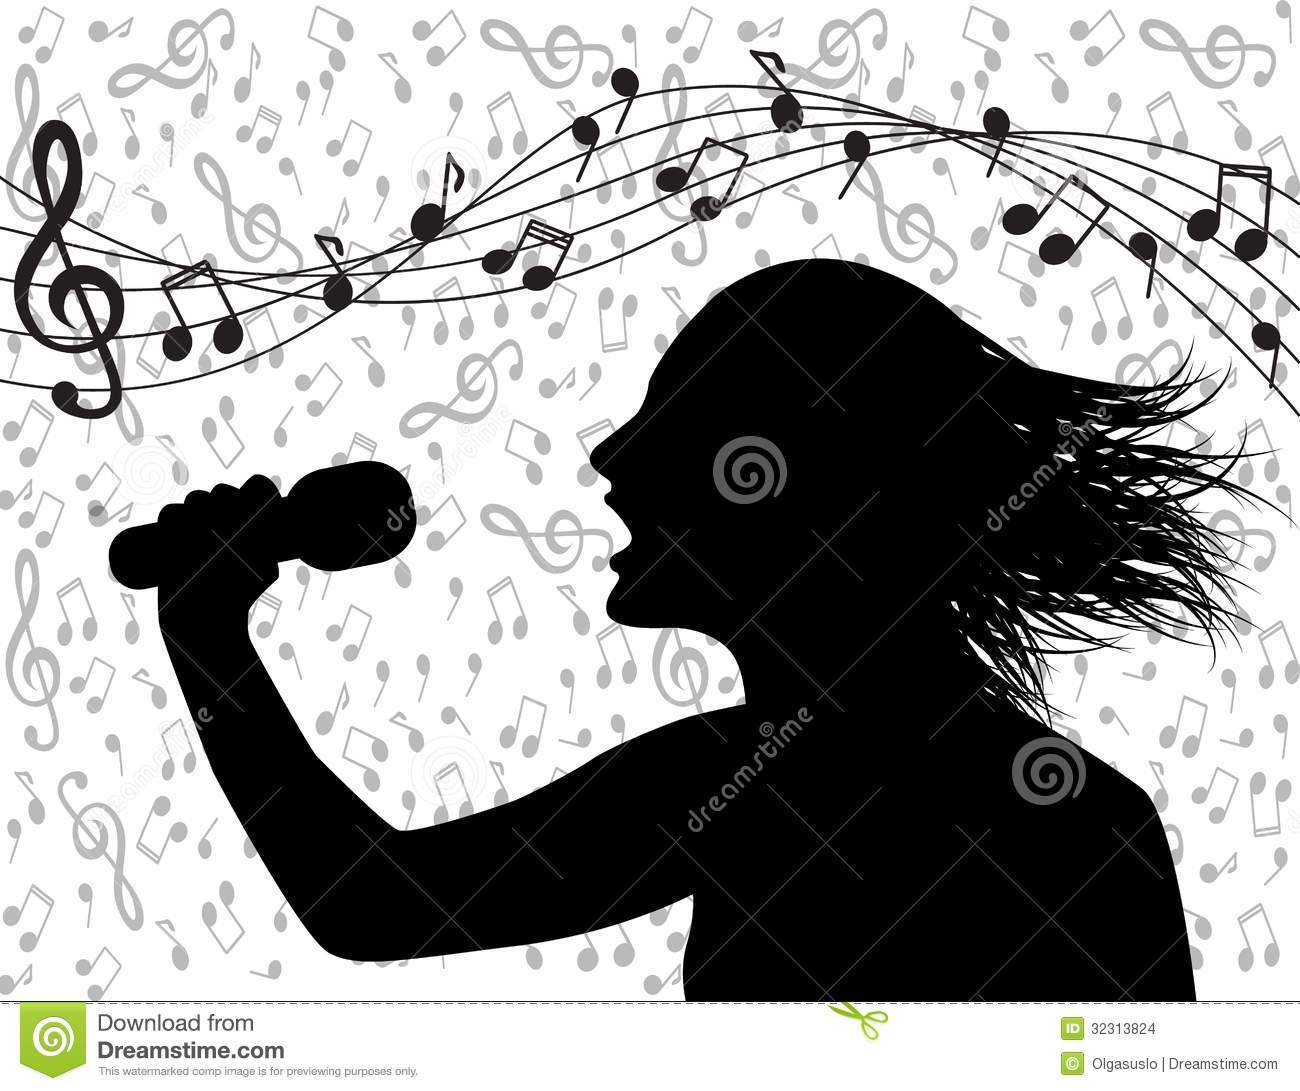 People Singing And Musical Lineup Stock Illustration - Illustration of idol, arts ...